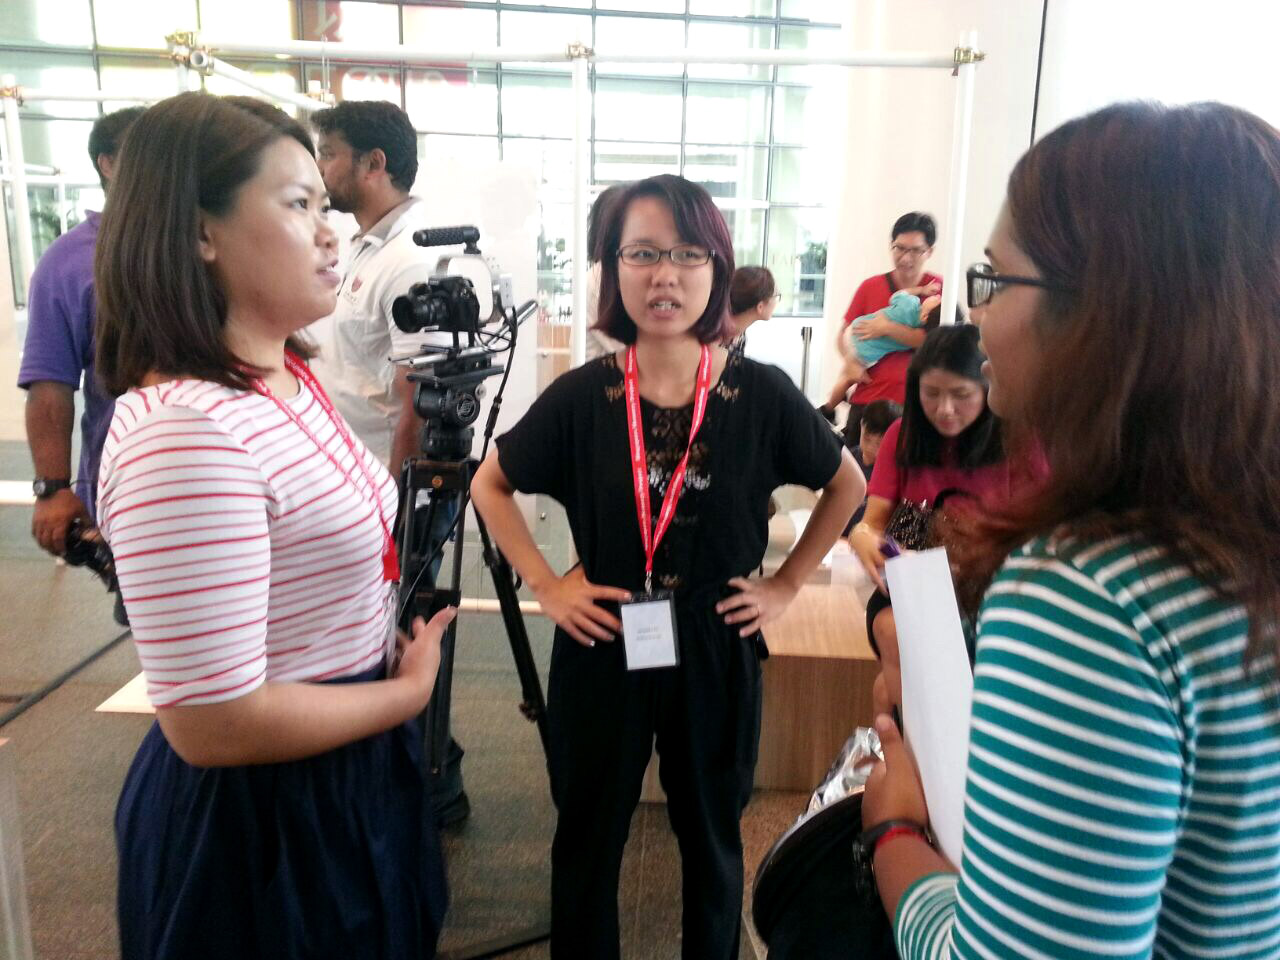 Gracie Teo (left) and Samantha Tio answer questions about Singapore Snaps